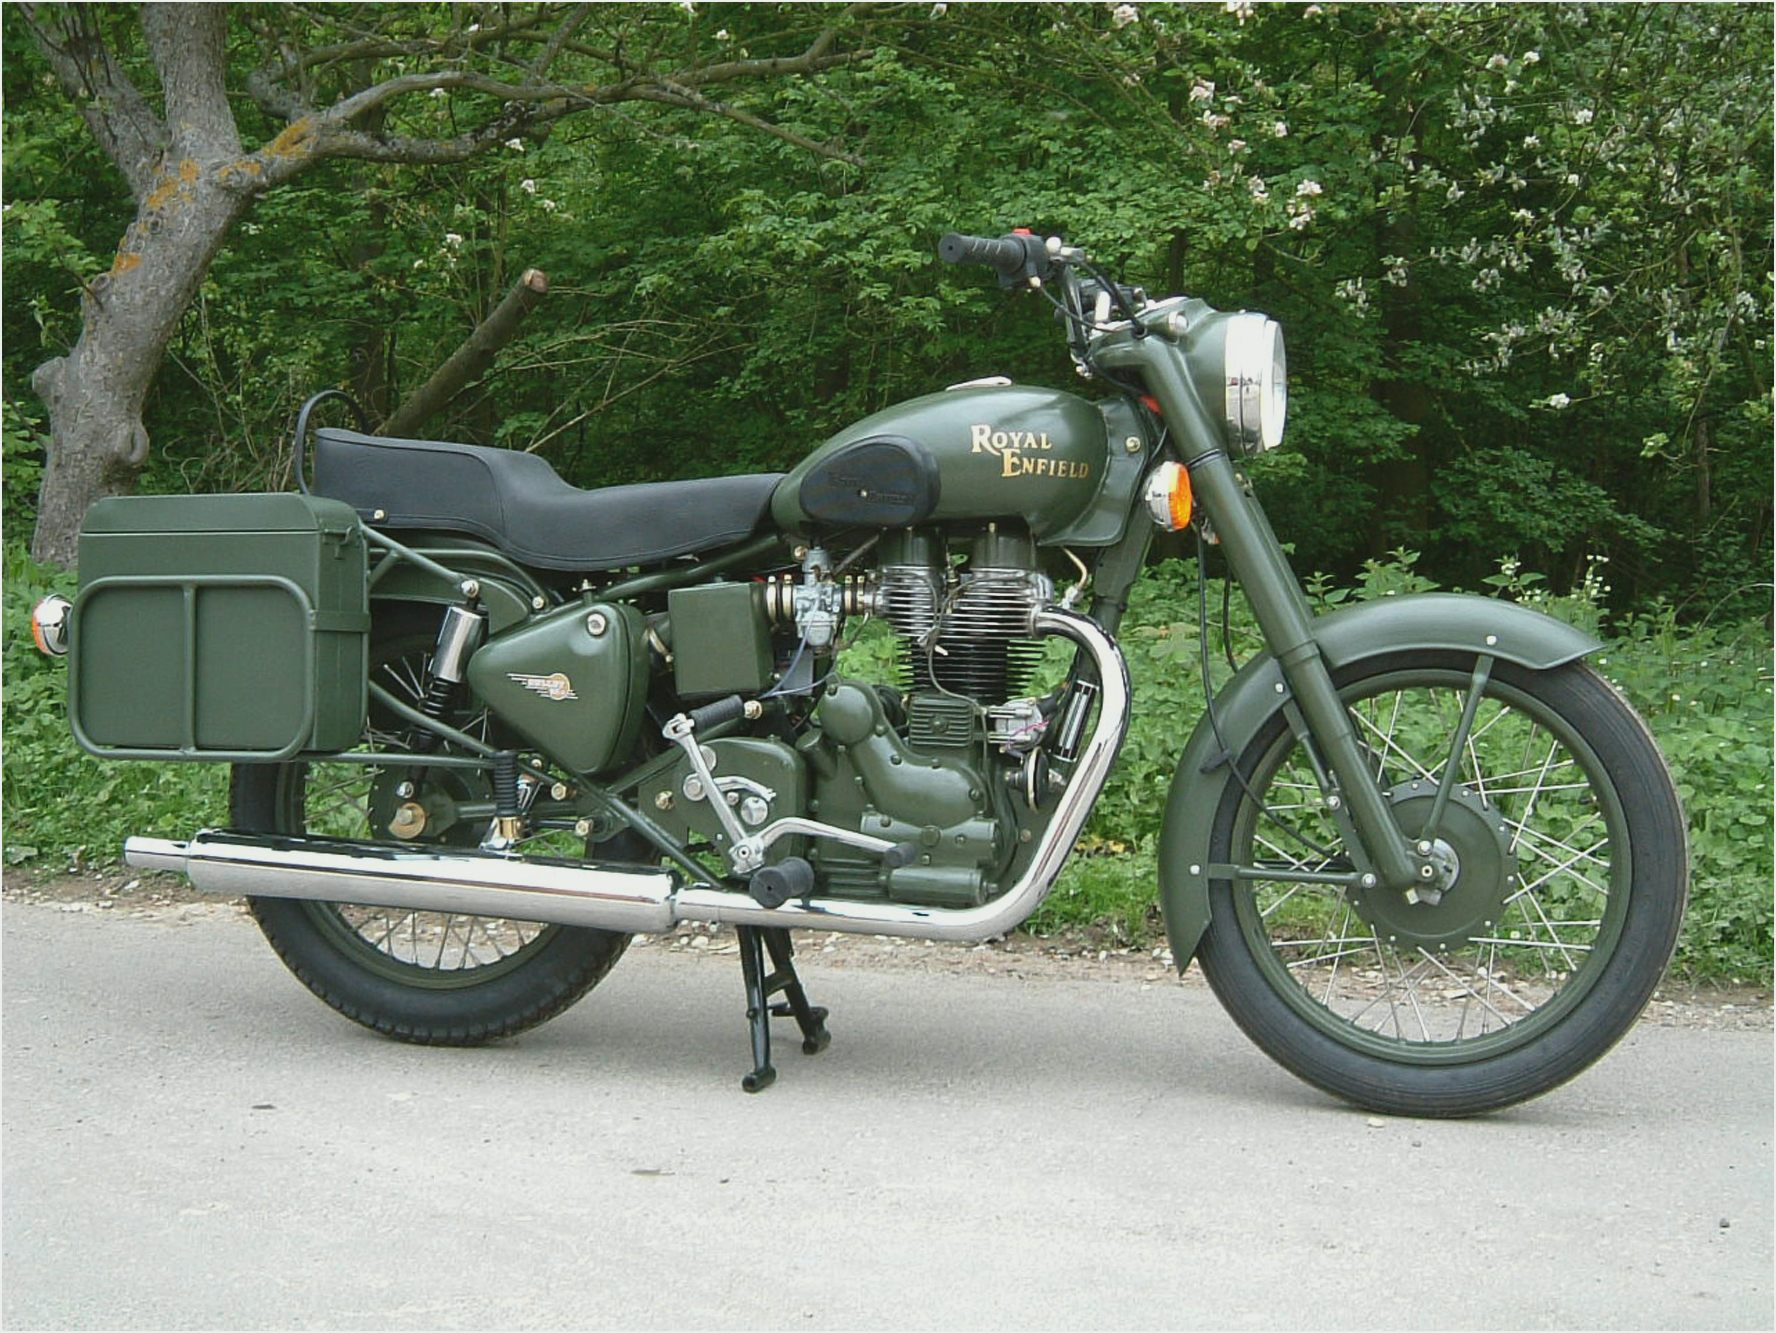 Royal Enfield Bullet 350 Army 2000 images #122942